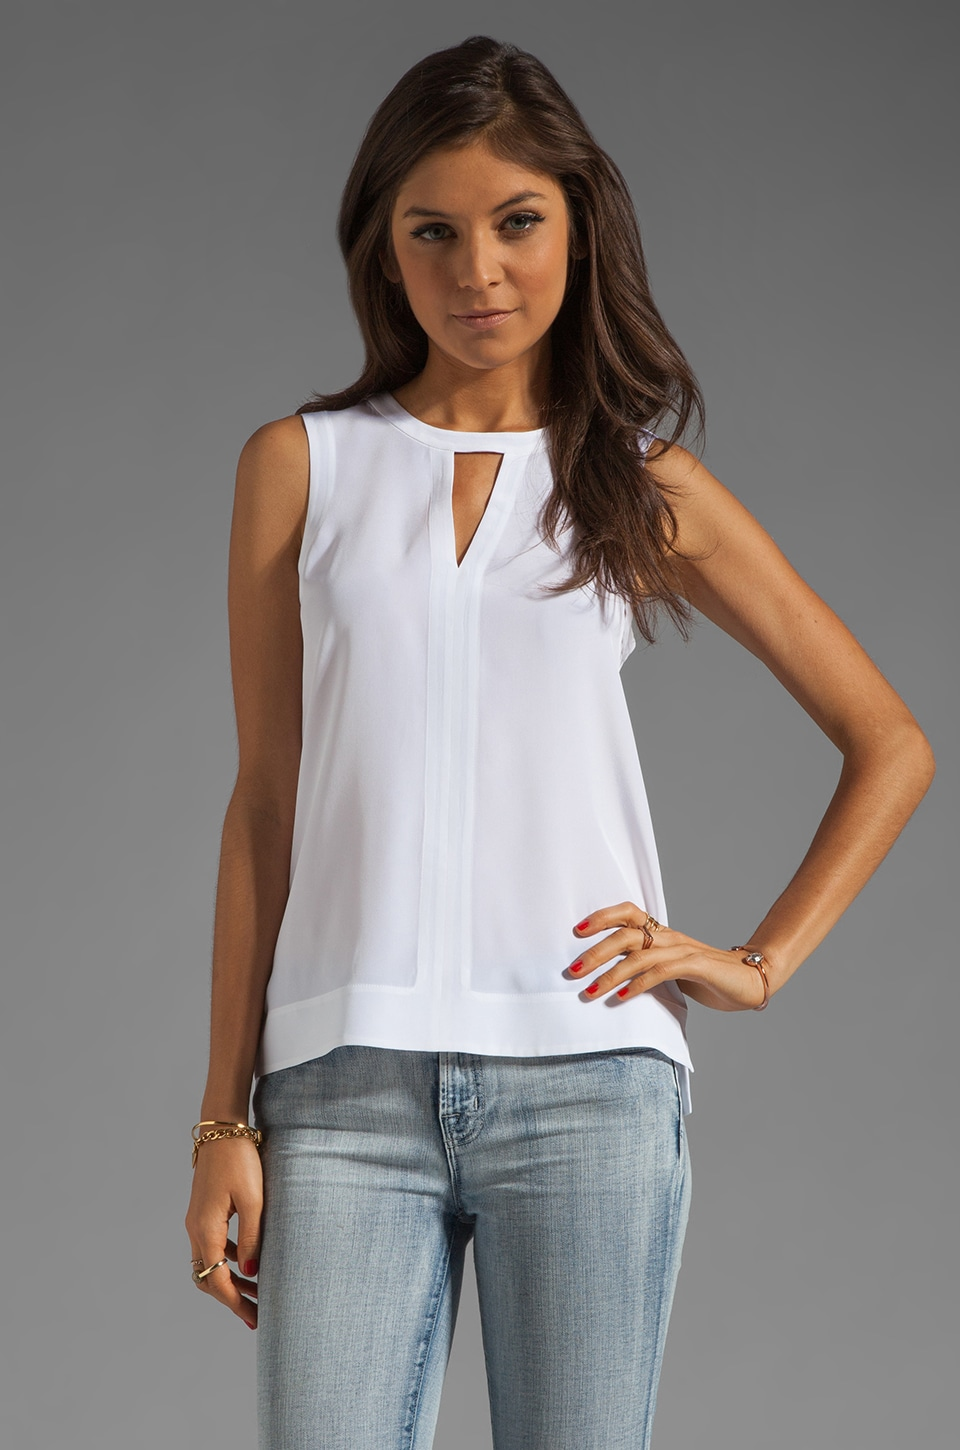 Tibi Solid Silk Splitneck Tank in White